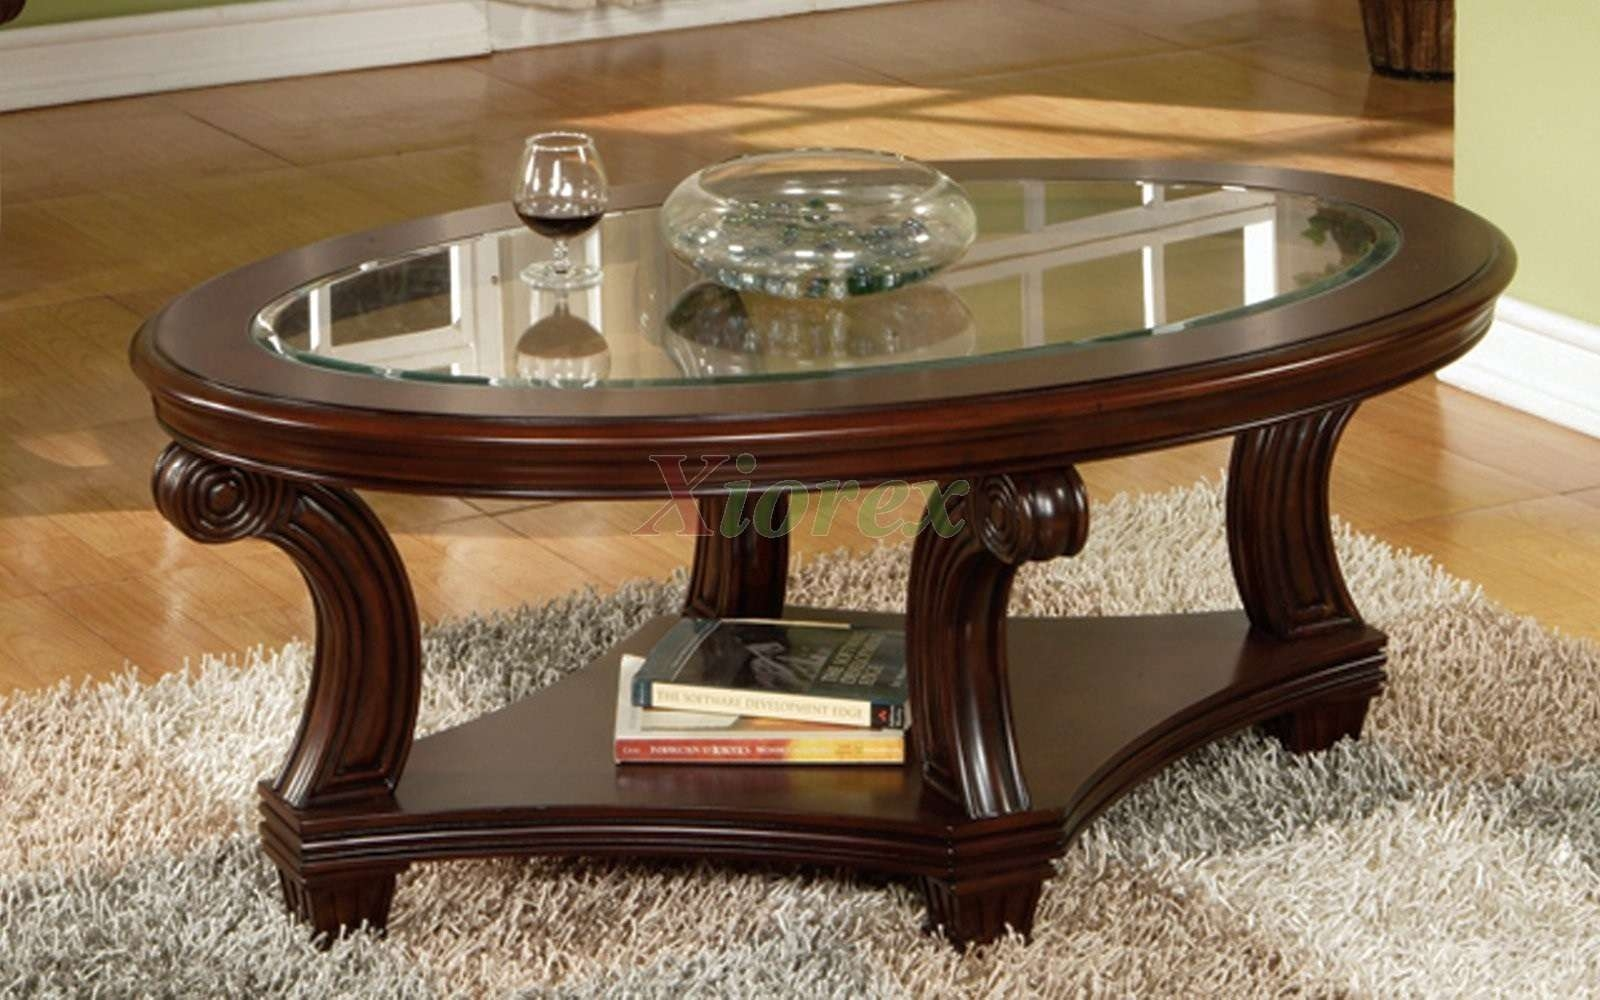 Antique Oval Coffee Table With Glass Top Elegant – Oval Coffee In Famous Oval Glass And Wood Coffee Tables (View 1 of 20)